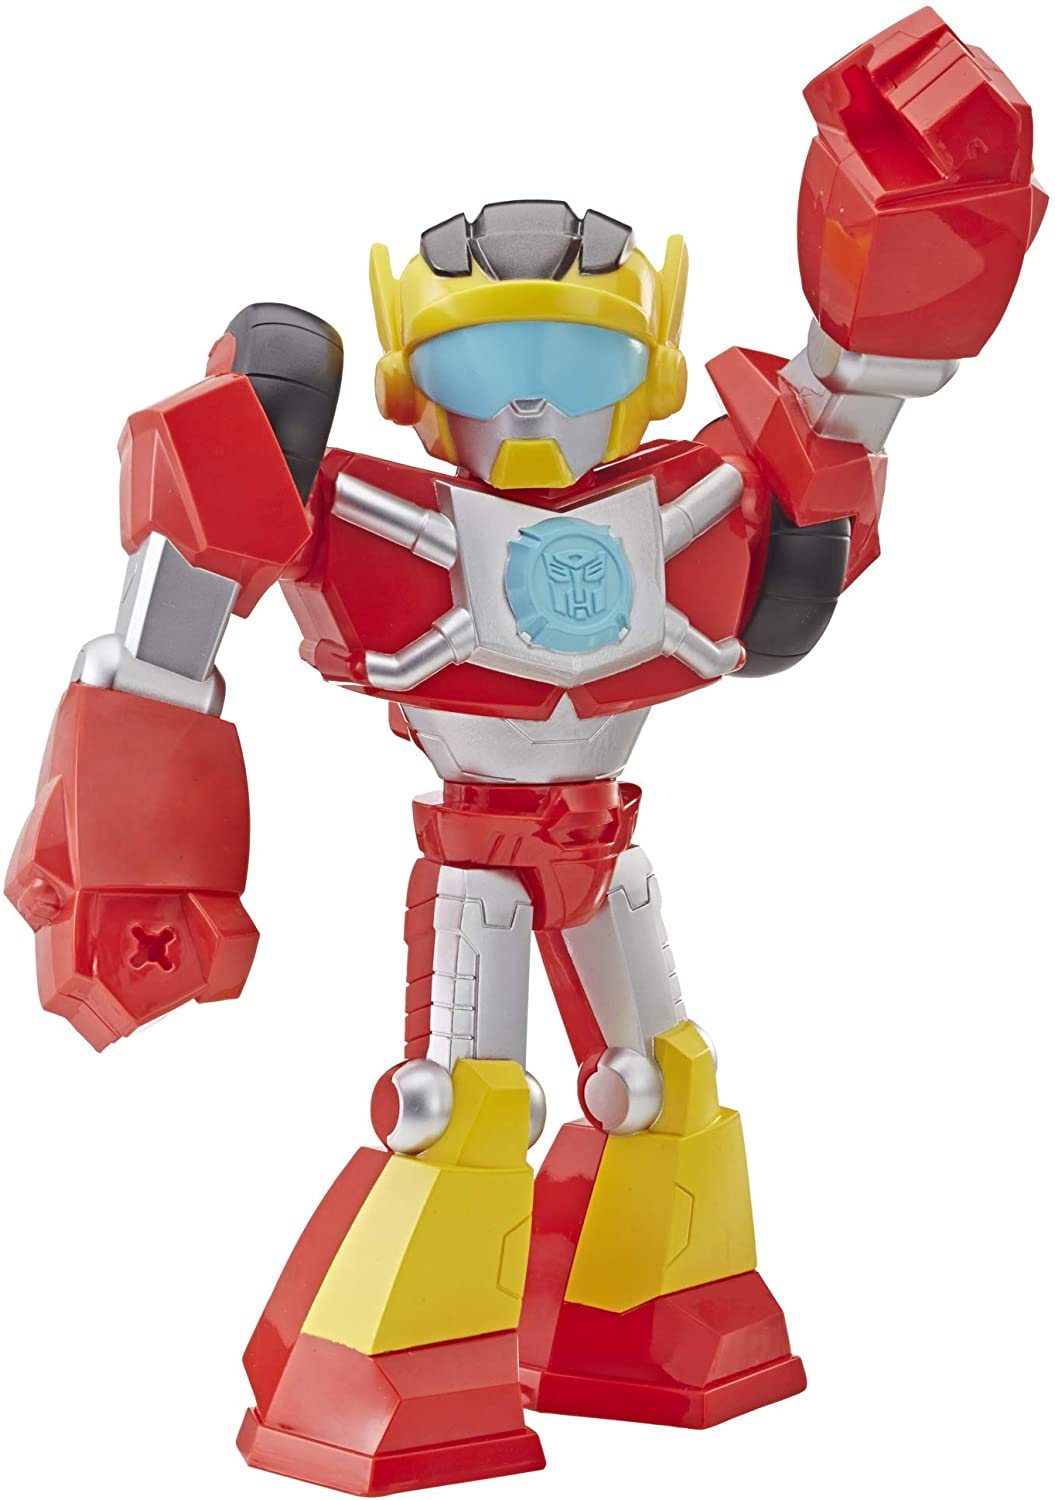 Playskool HerosTRA Mega Hot Shots